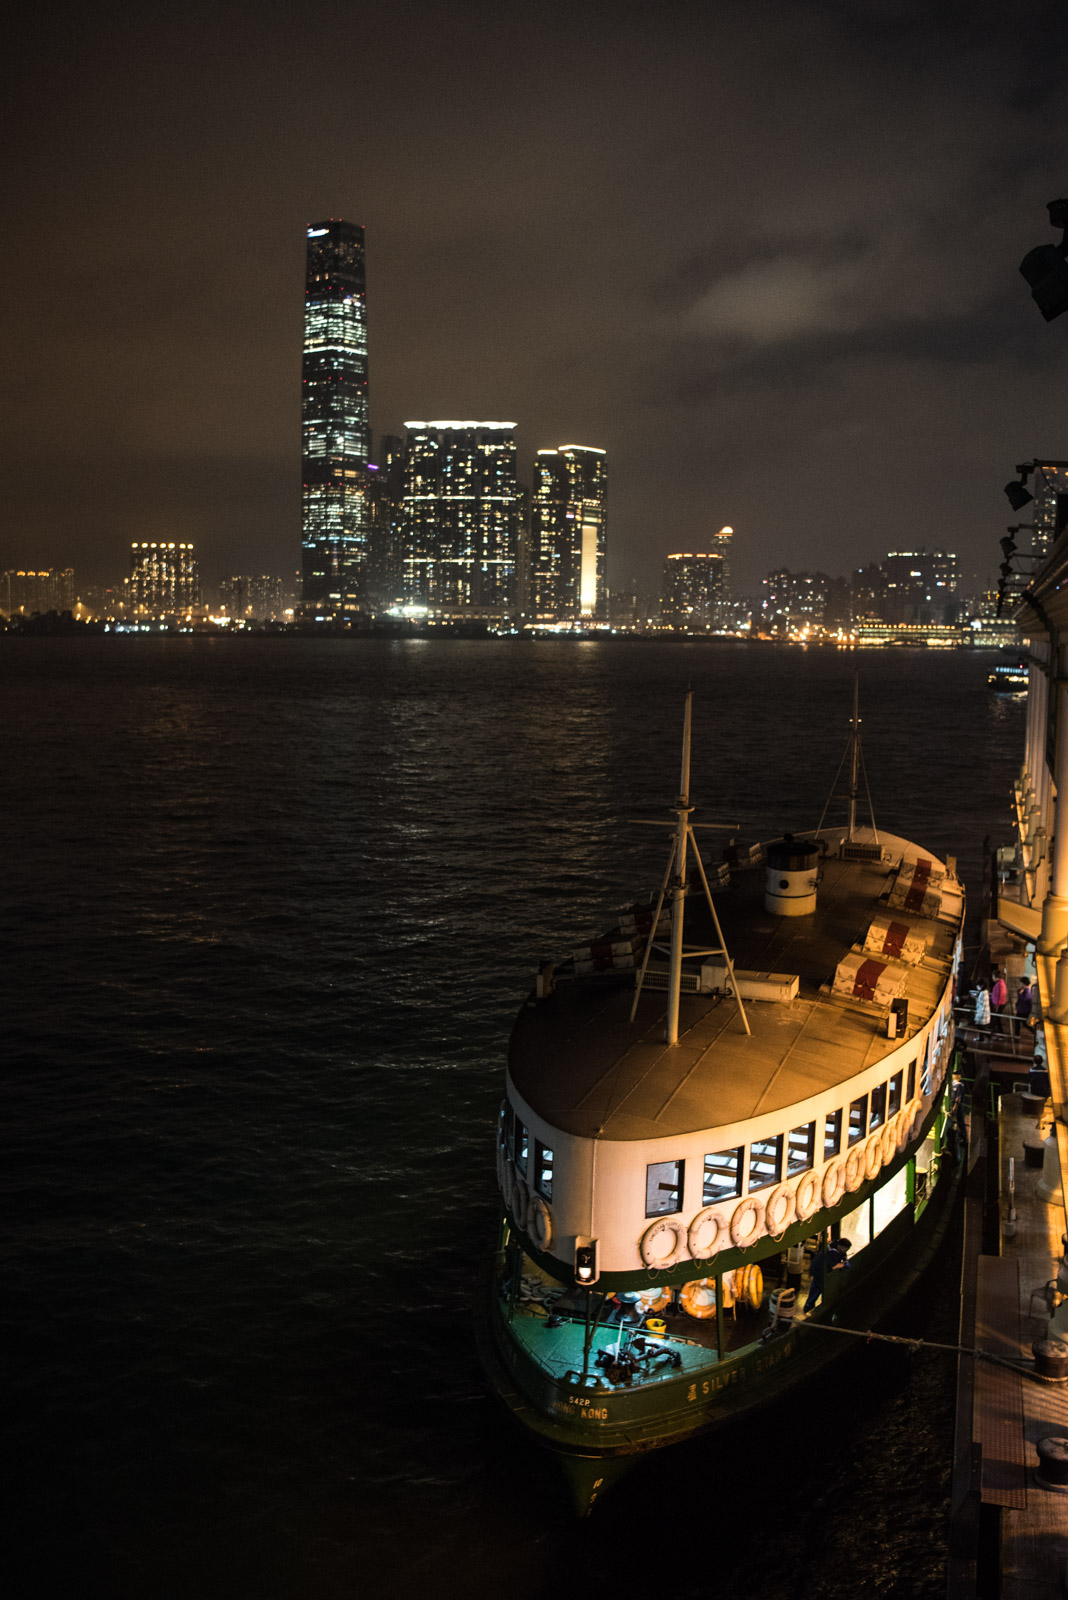 Star Ferry, Central